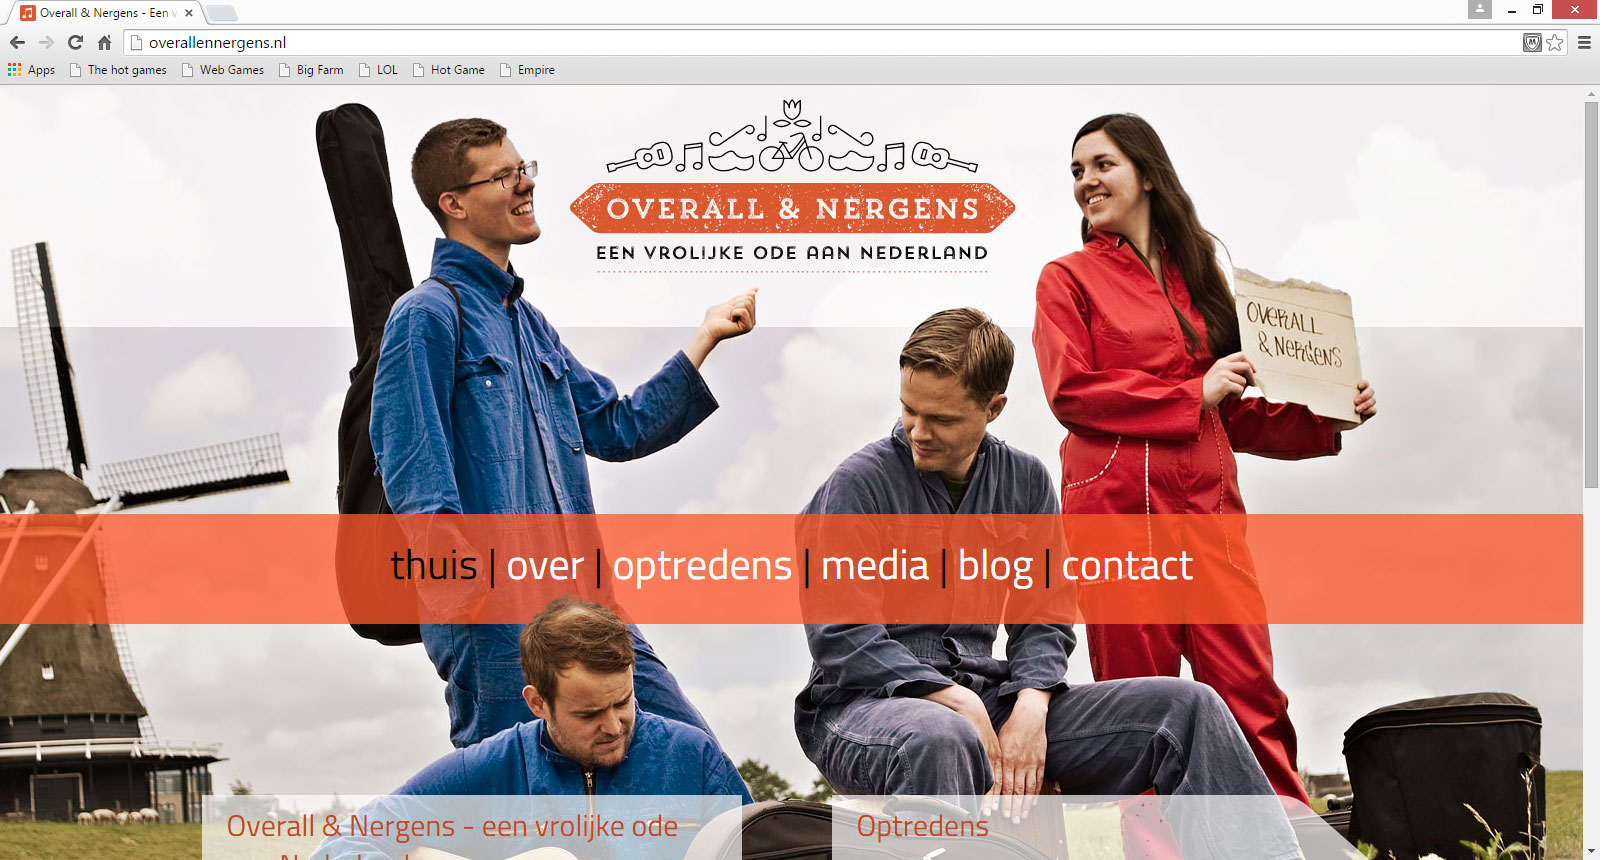 Overall & Nergens website